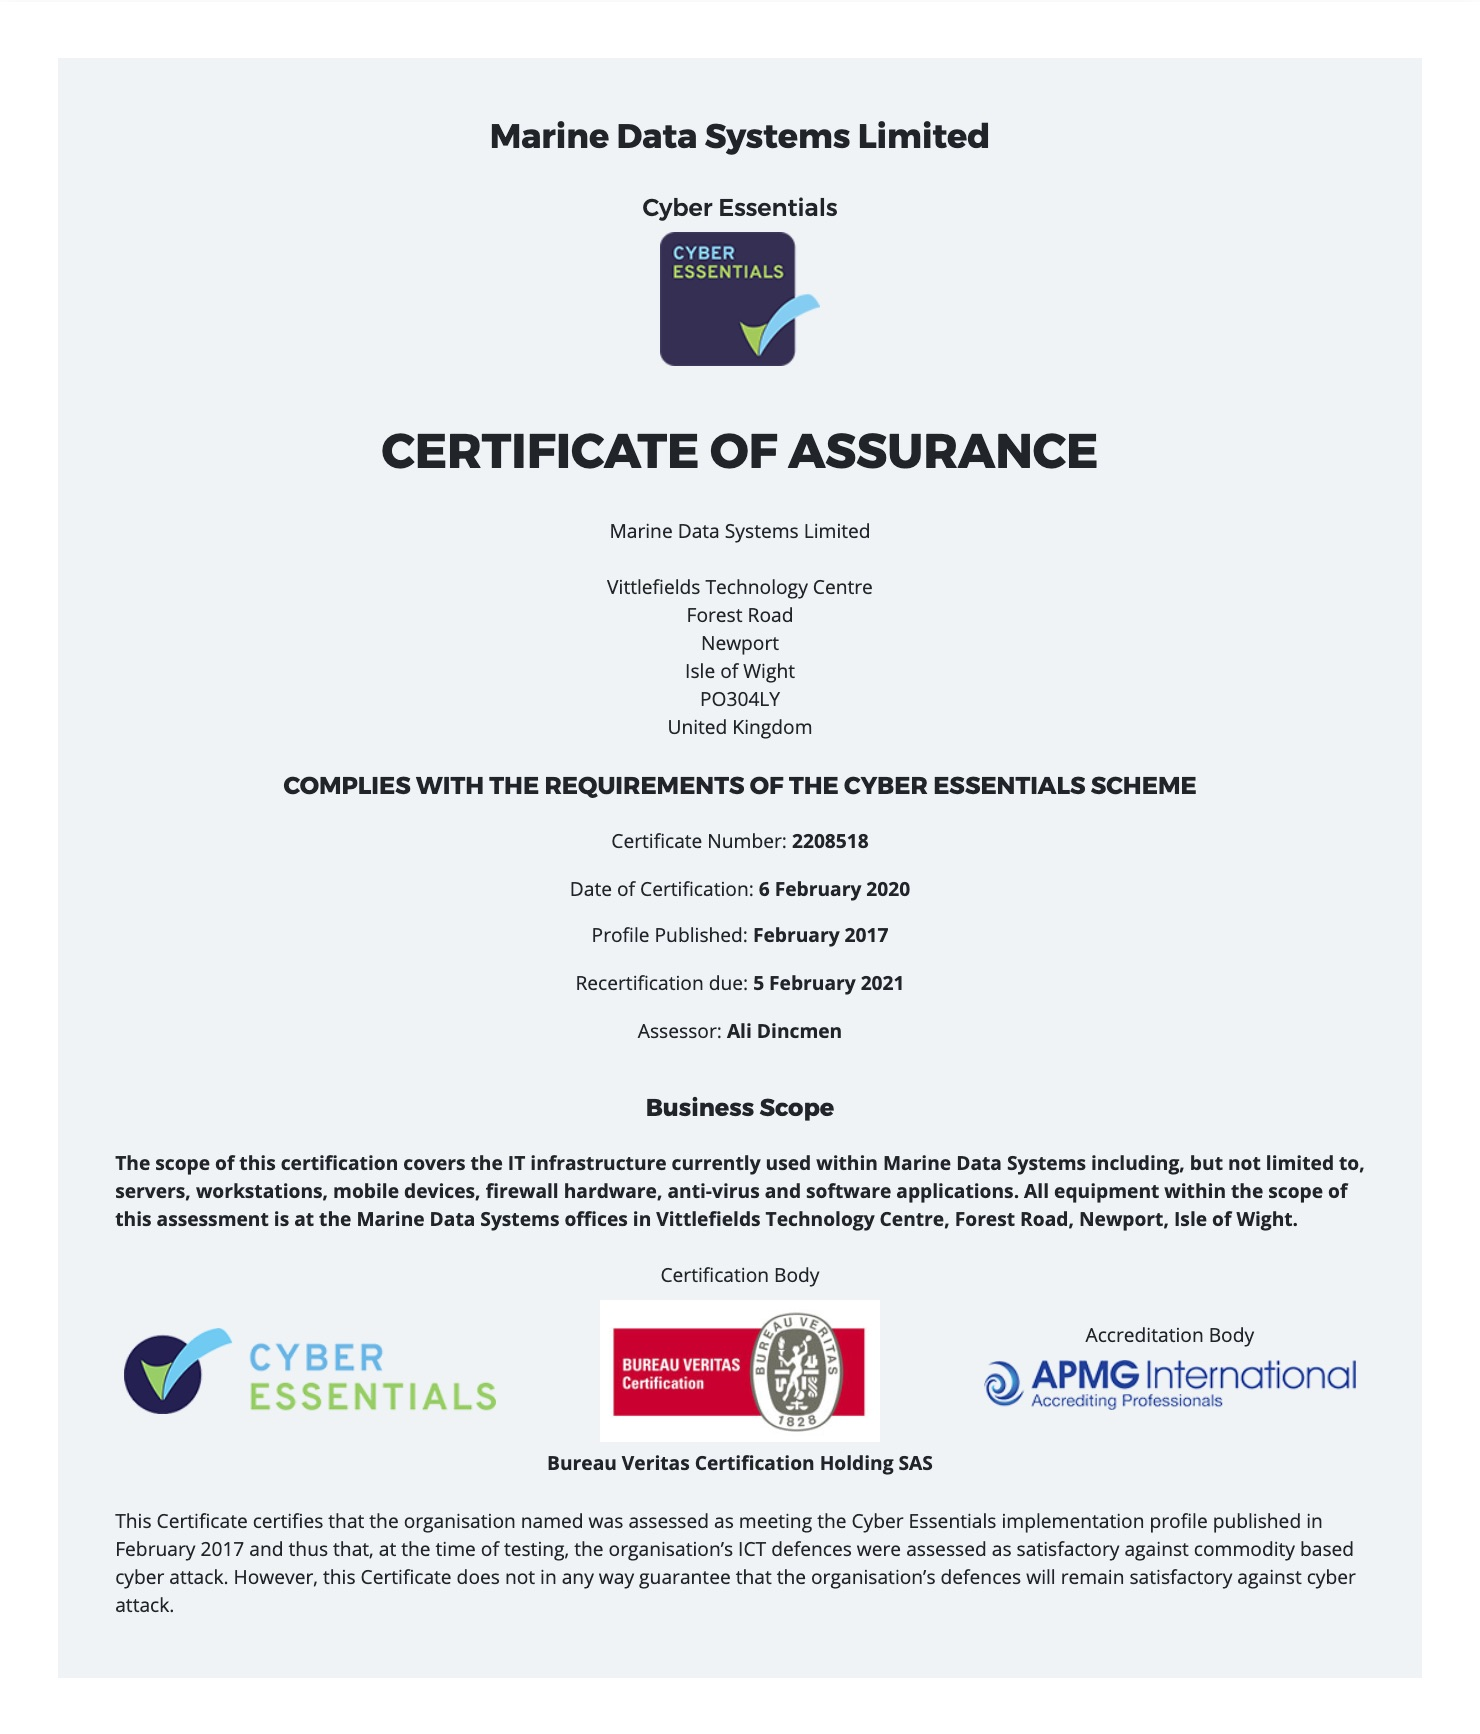 Marine Data Systems - Cyber Essentials Certificate